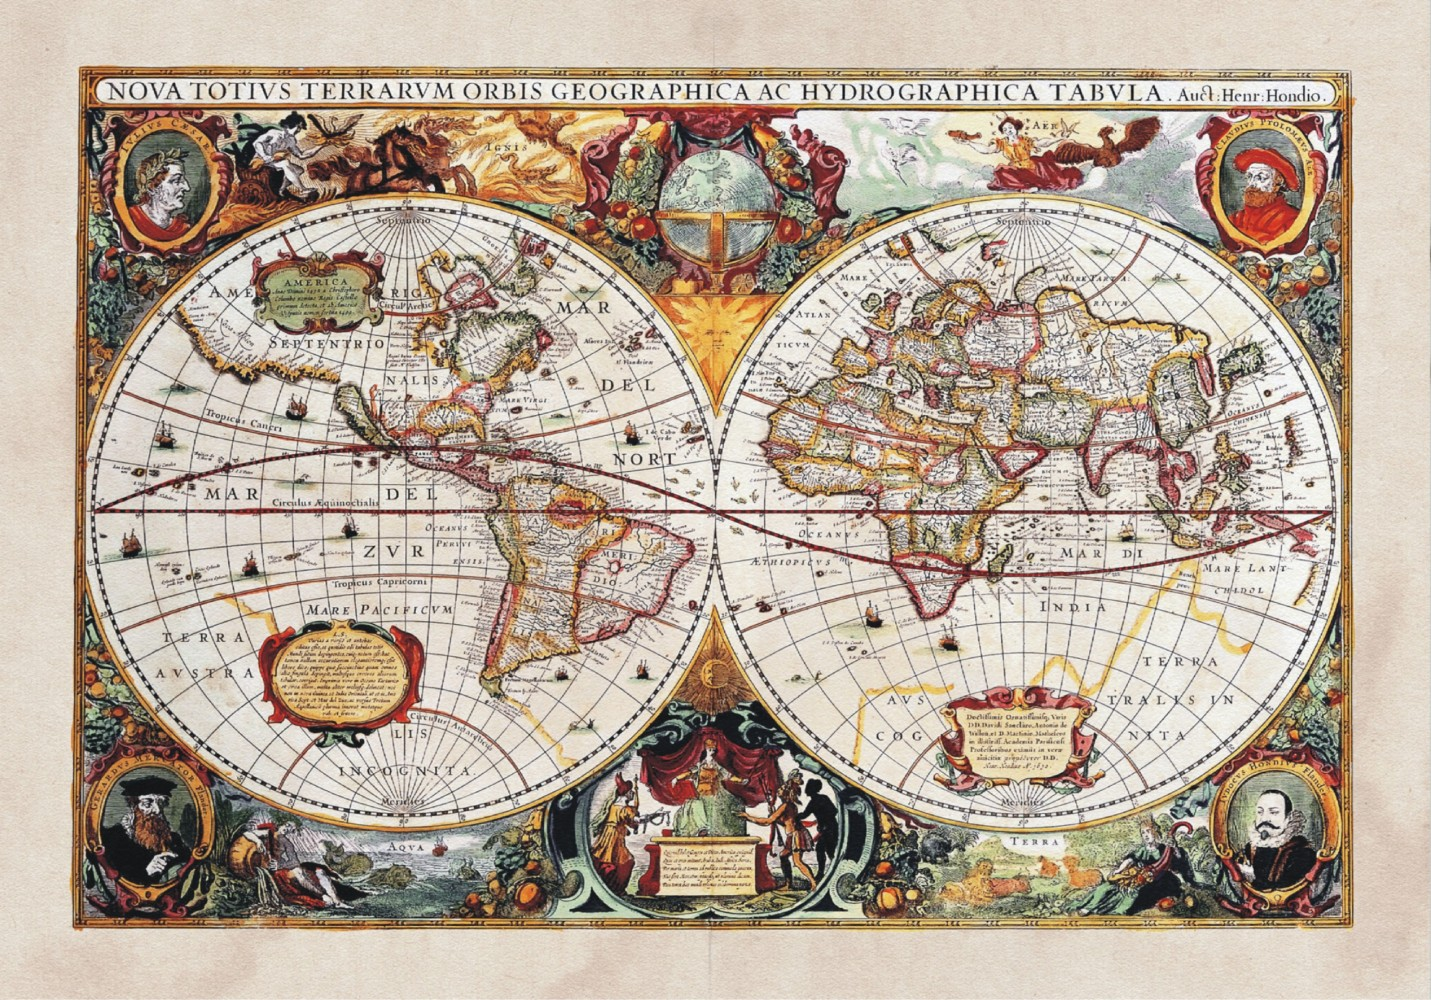 XXL Poster Wall mural wallpaper history world map geography photo 160 1431x1000